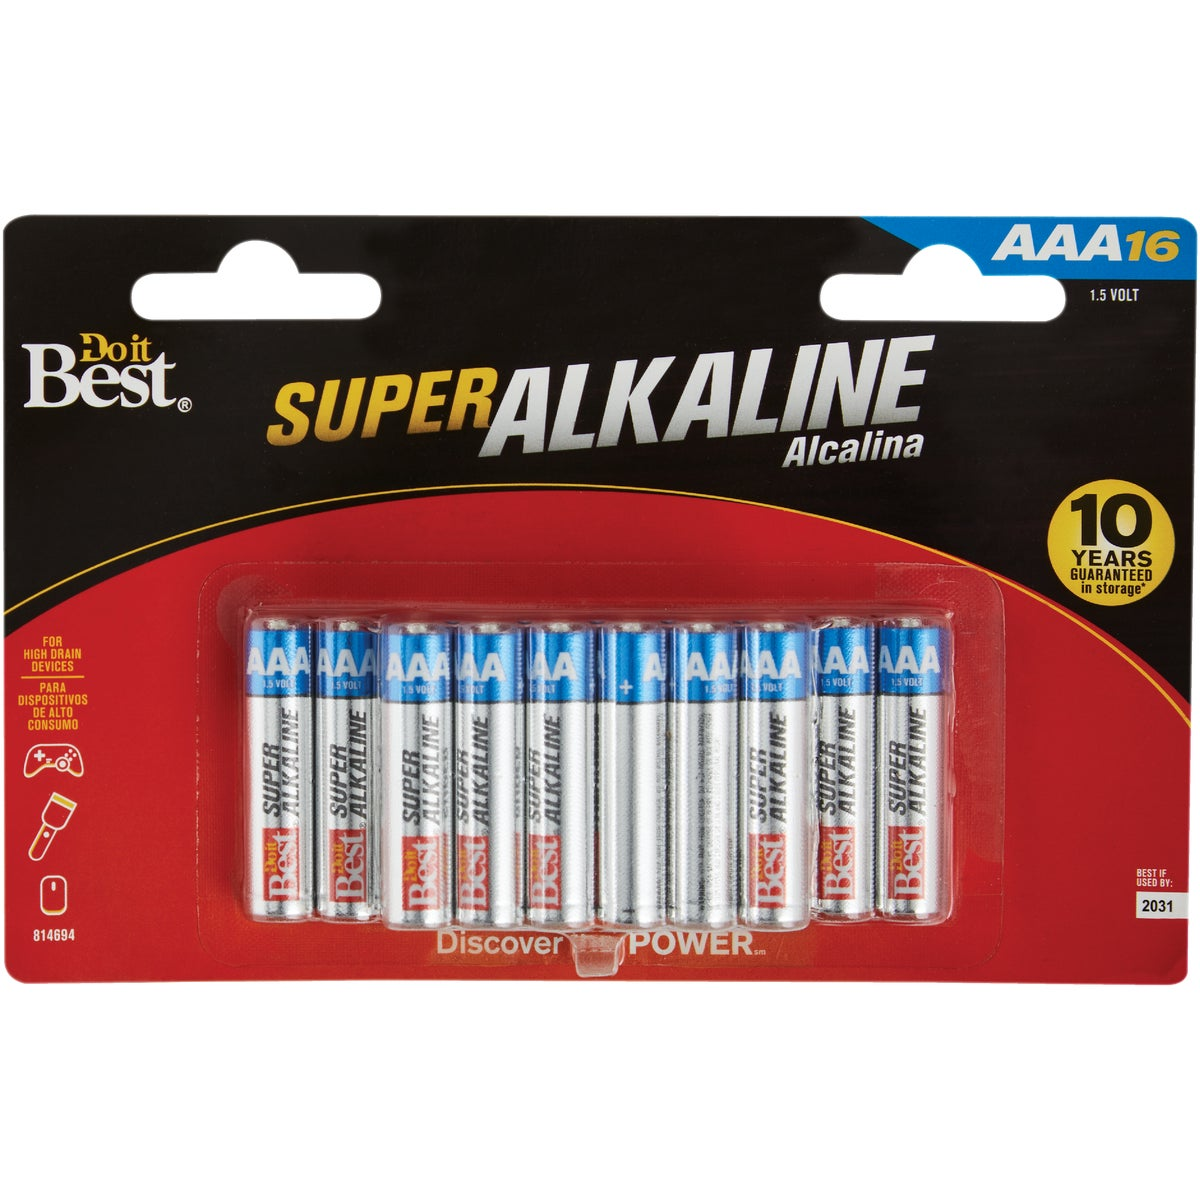 16PK DIB AAA ALK BATTERY - DIB824-16SC by Ray O Vac